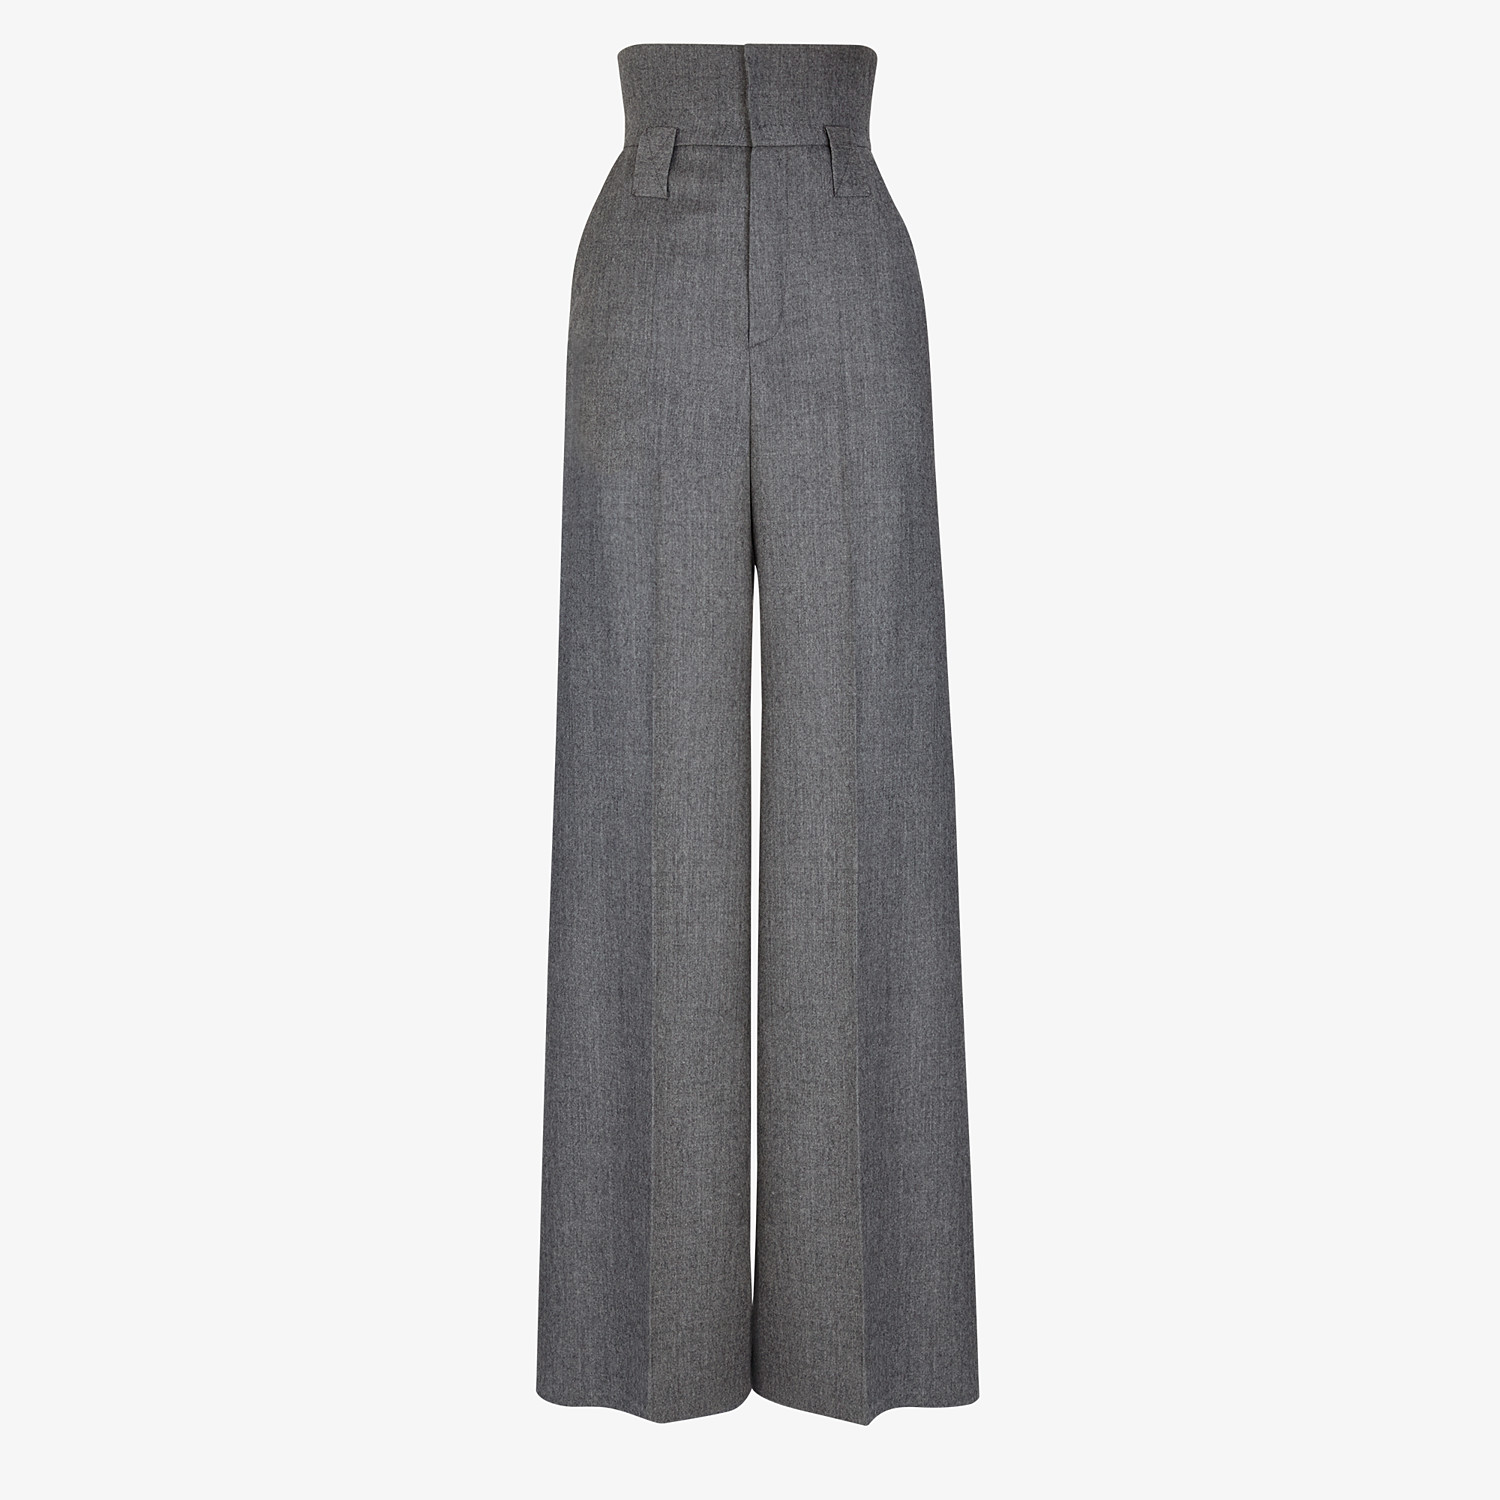 FENDI TROUSERS - Grey flannel trousers - view 1 detail